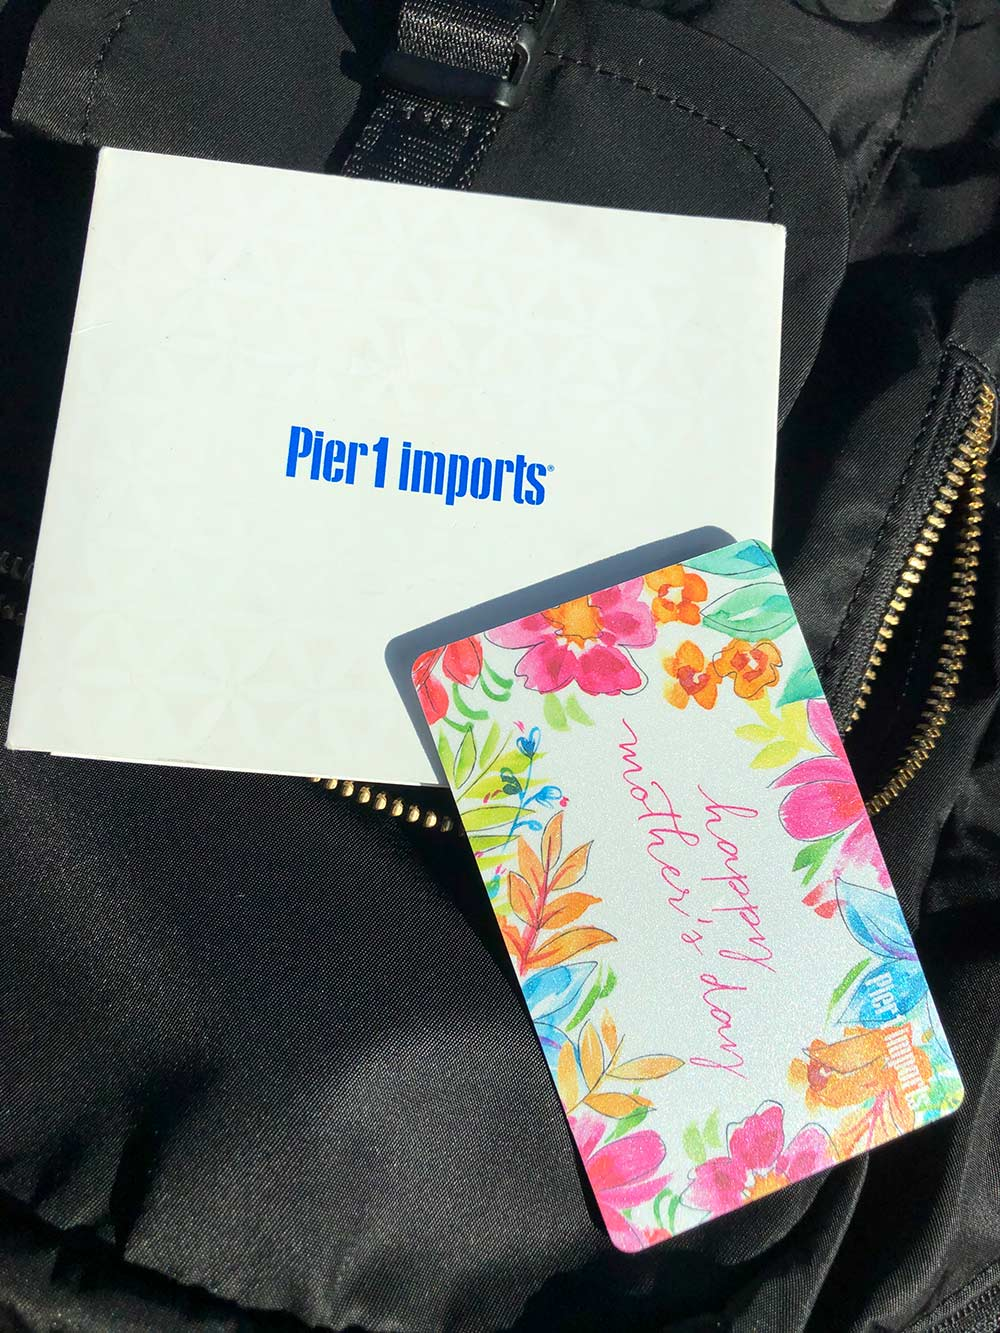 pier 1 mothers day gift card